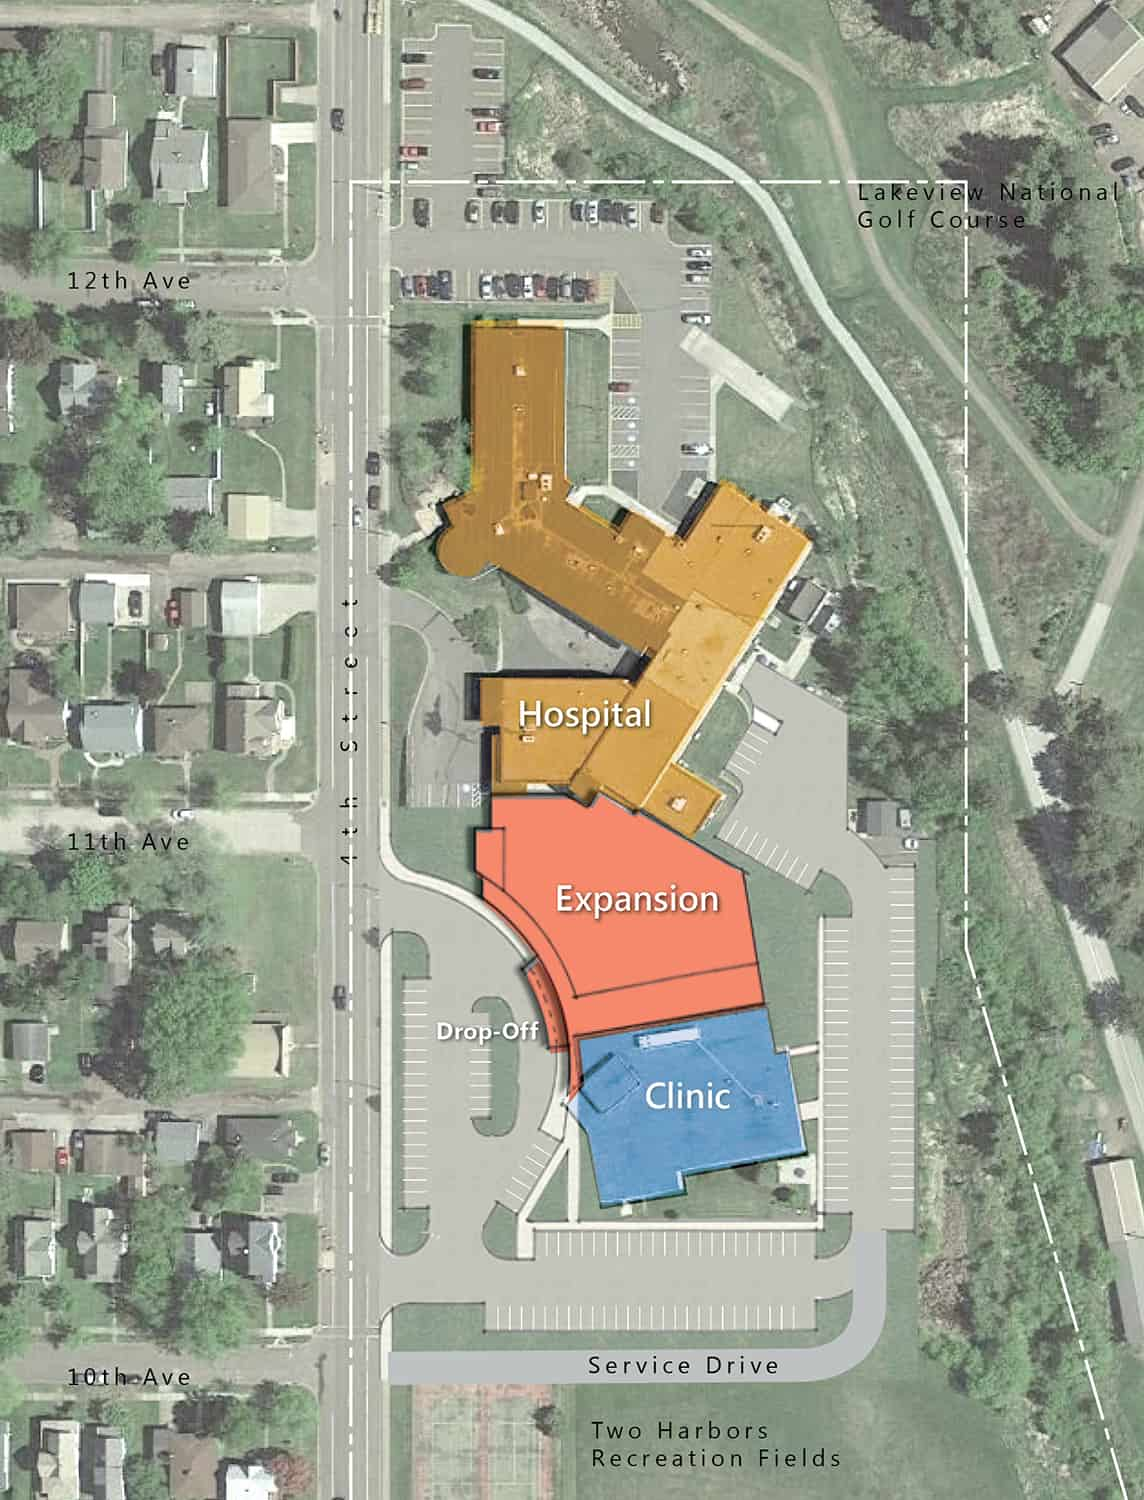 A site plan of the Lake View campus shows the addition between the existing hospital and clinic facilities.